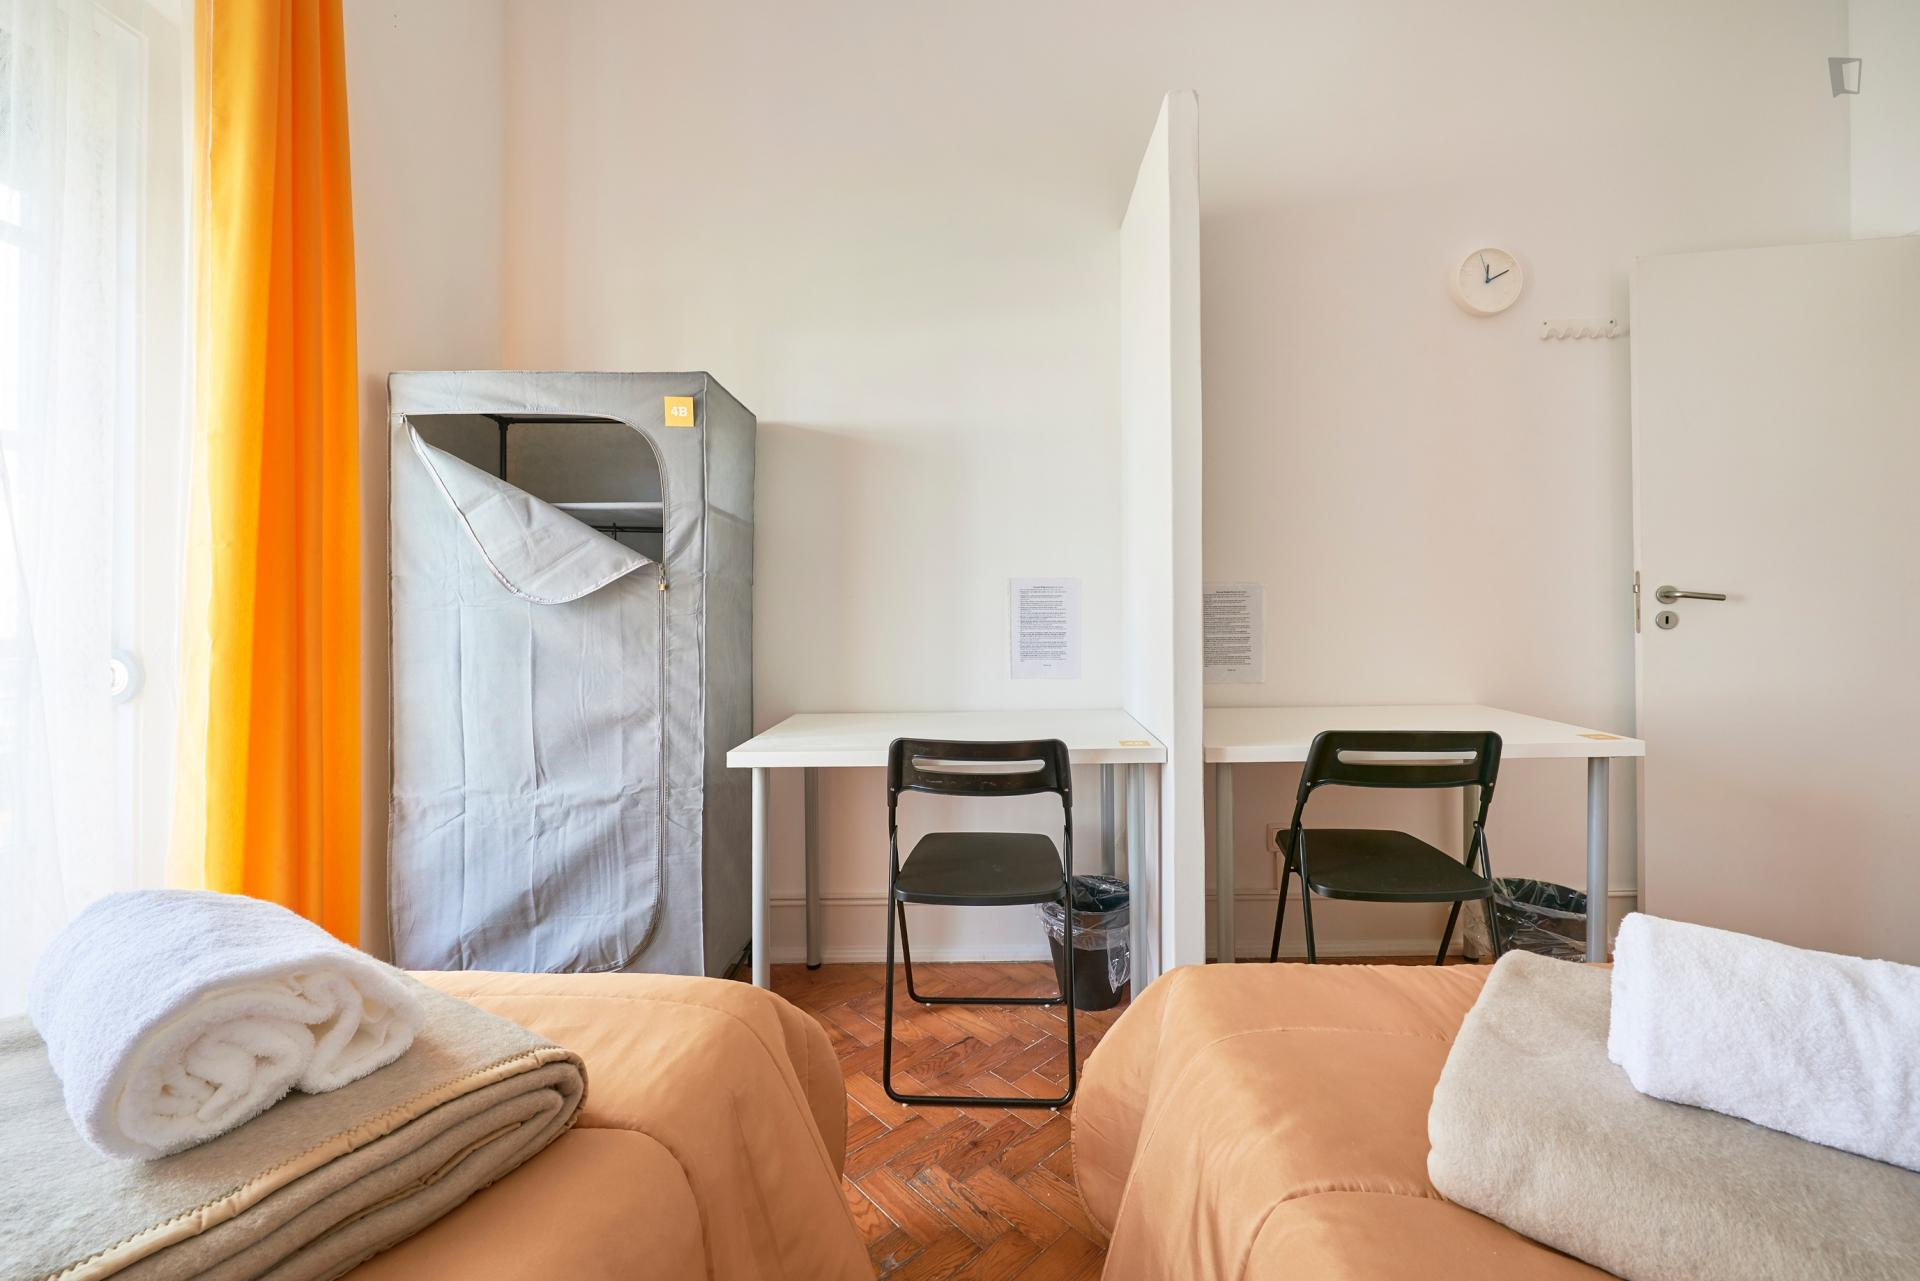 Bed In 2 Bed Shared Room Close To Instituto Superior Técnico De Lisboa Lisbon Student Accommodation